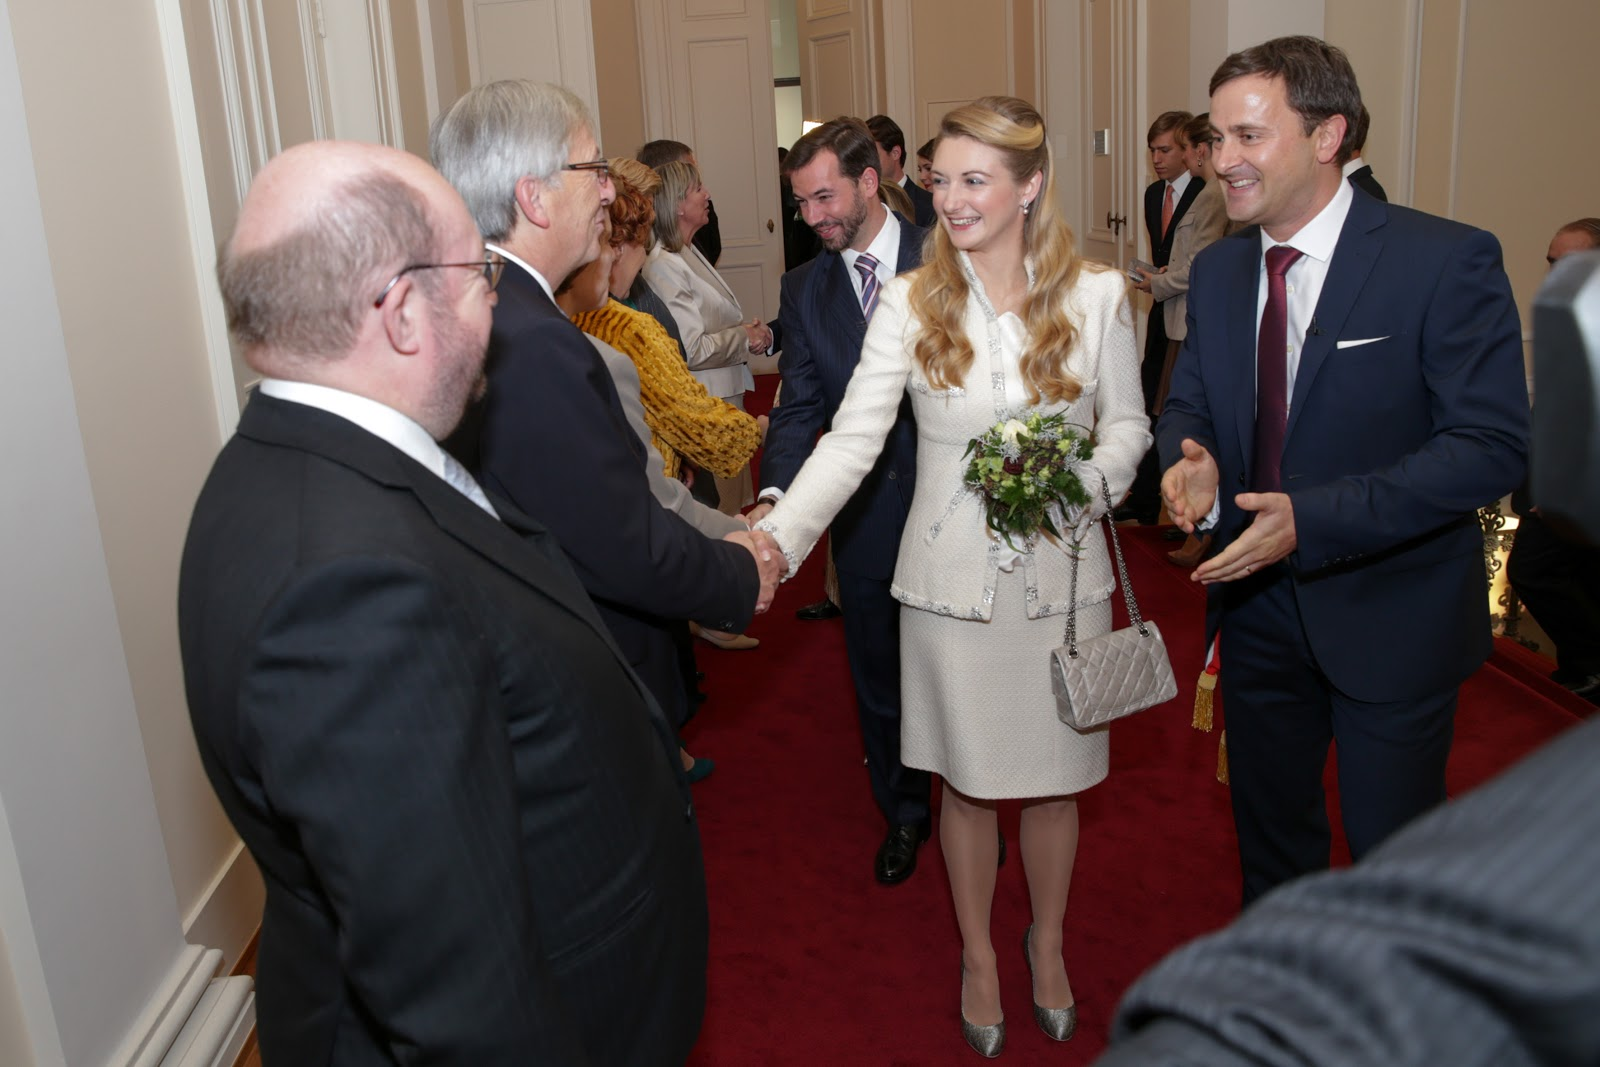 Official Civil Wedding Pictures